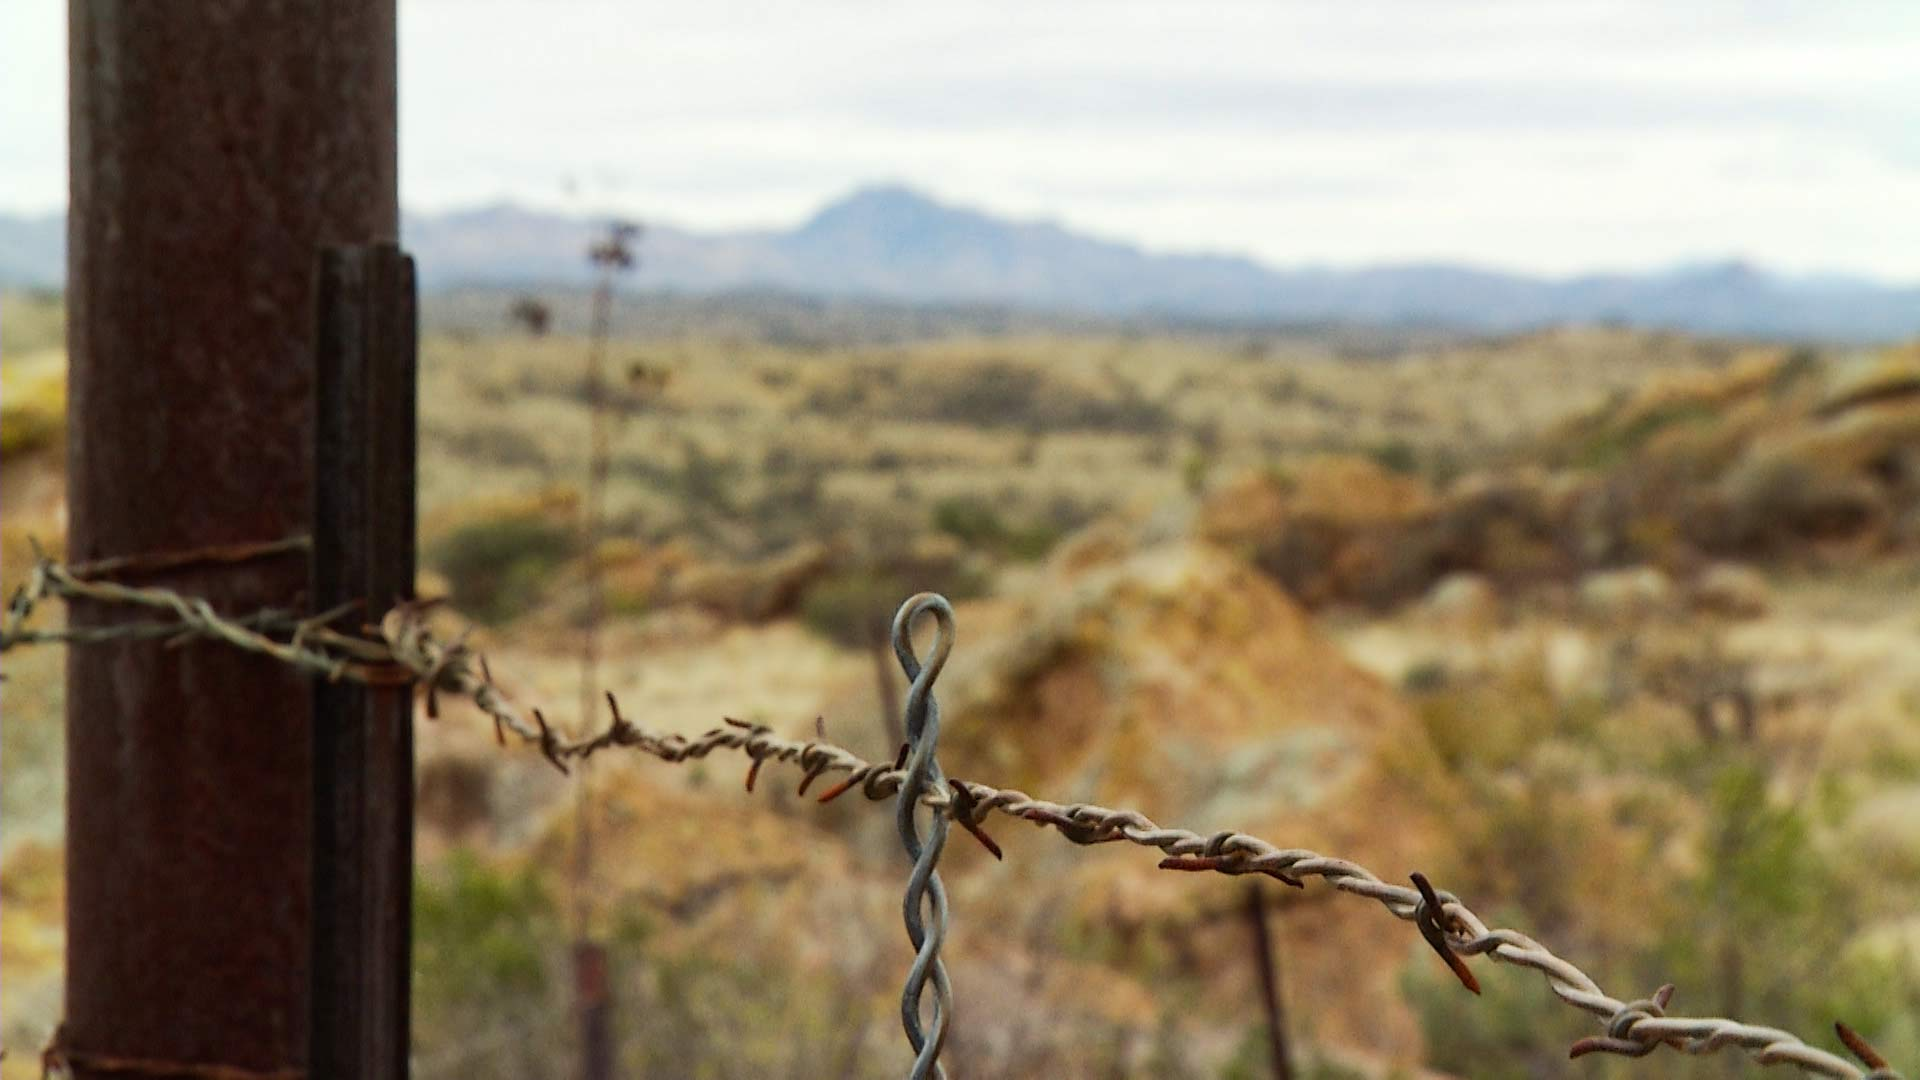 A barbed-wire fence located on the Chilton Ranch in Arivaca, Arizona.